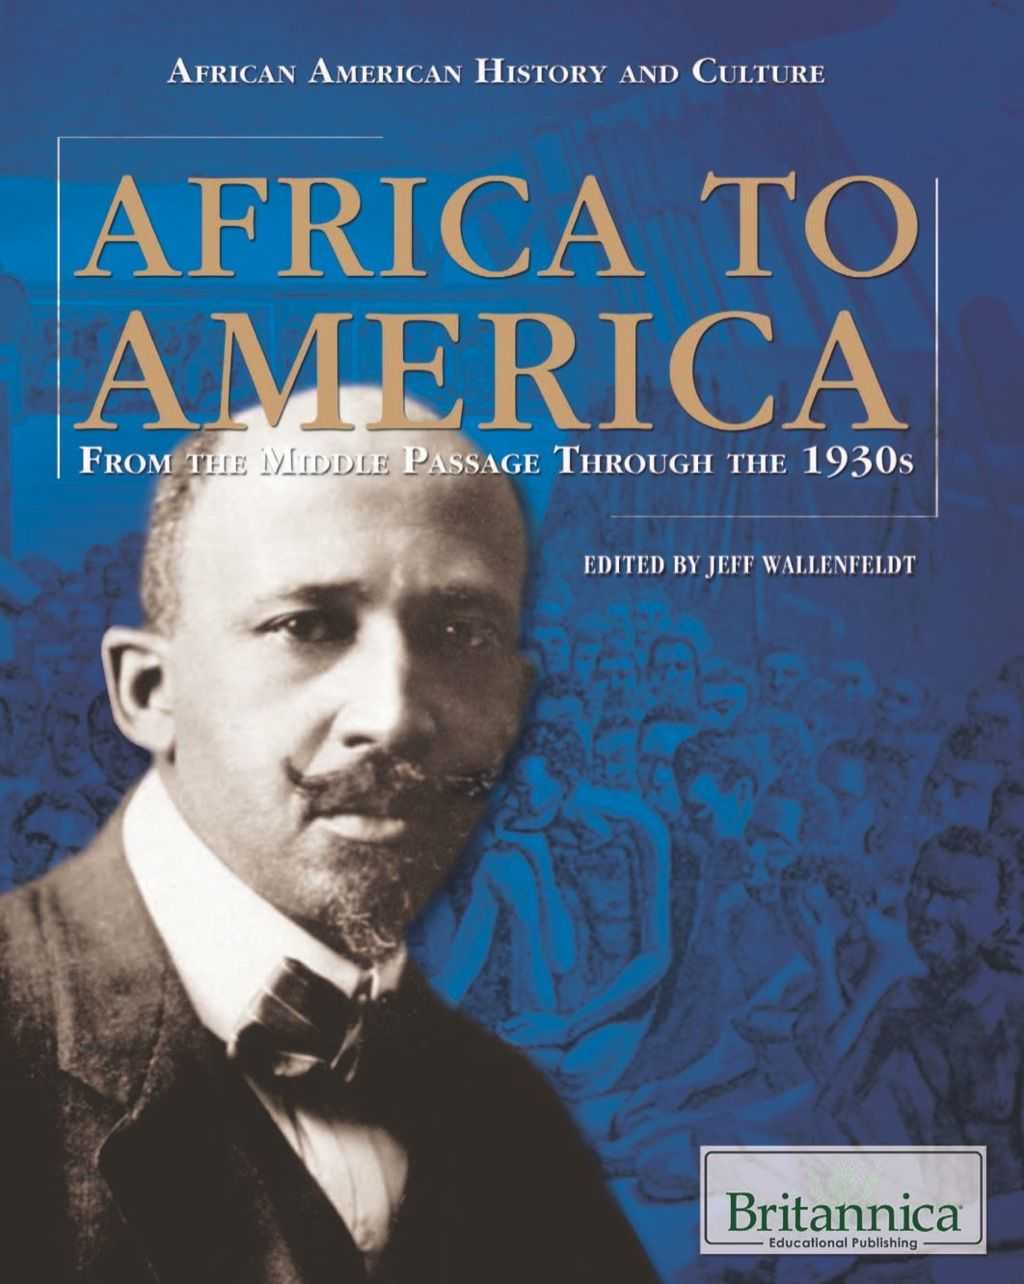 Africa to America From the Middle Passage Through the